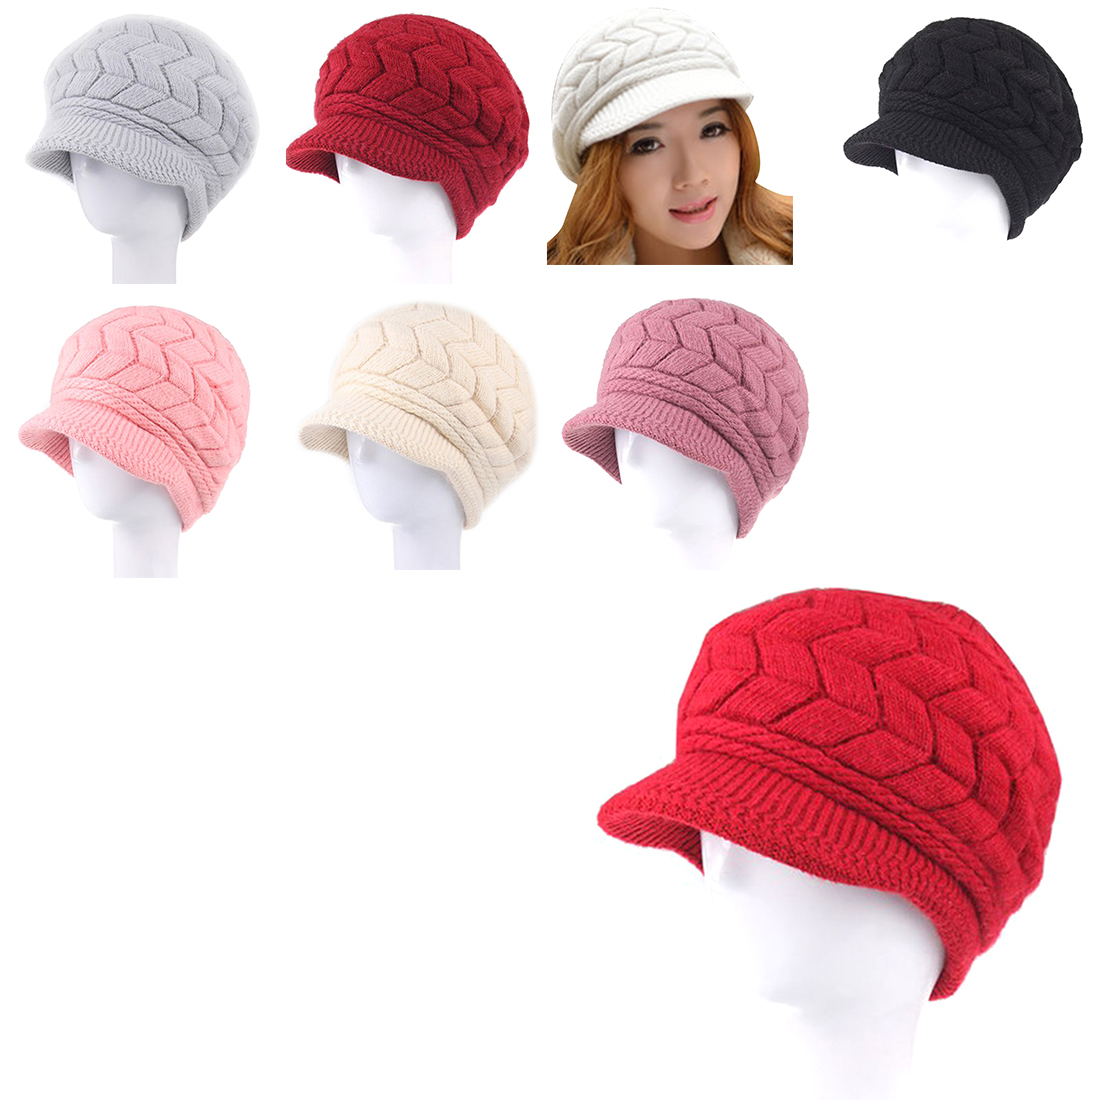 Hot Winter Women Hat Luxury Knitted Hats Female Soft High Elastic Warm Caps Beanies Headgear Girl Cap Solid Color